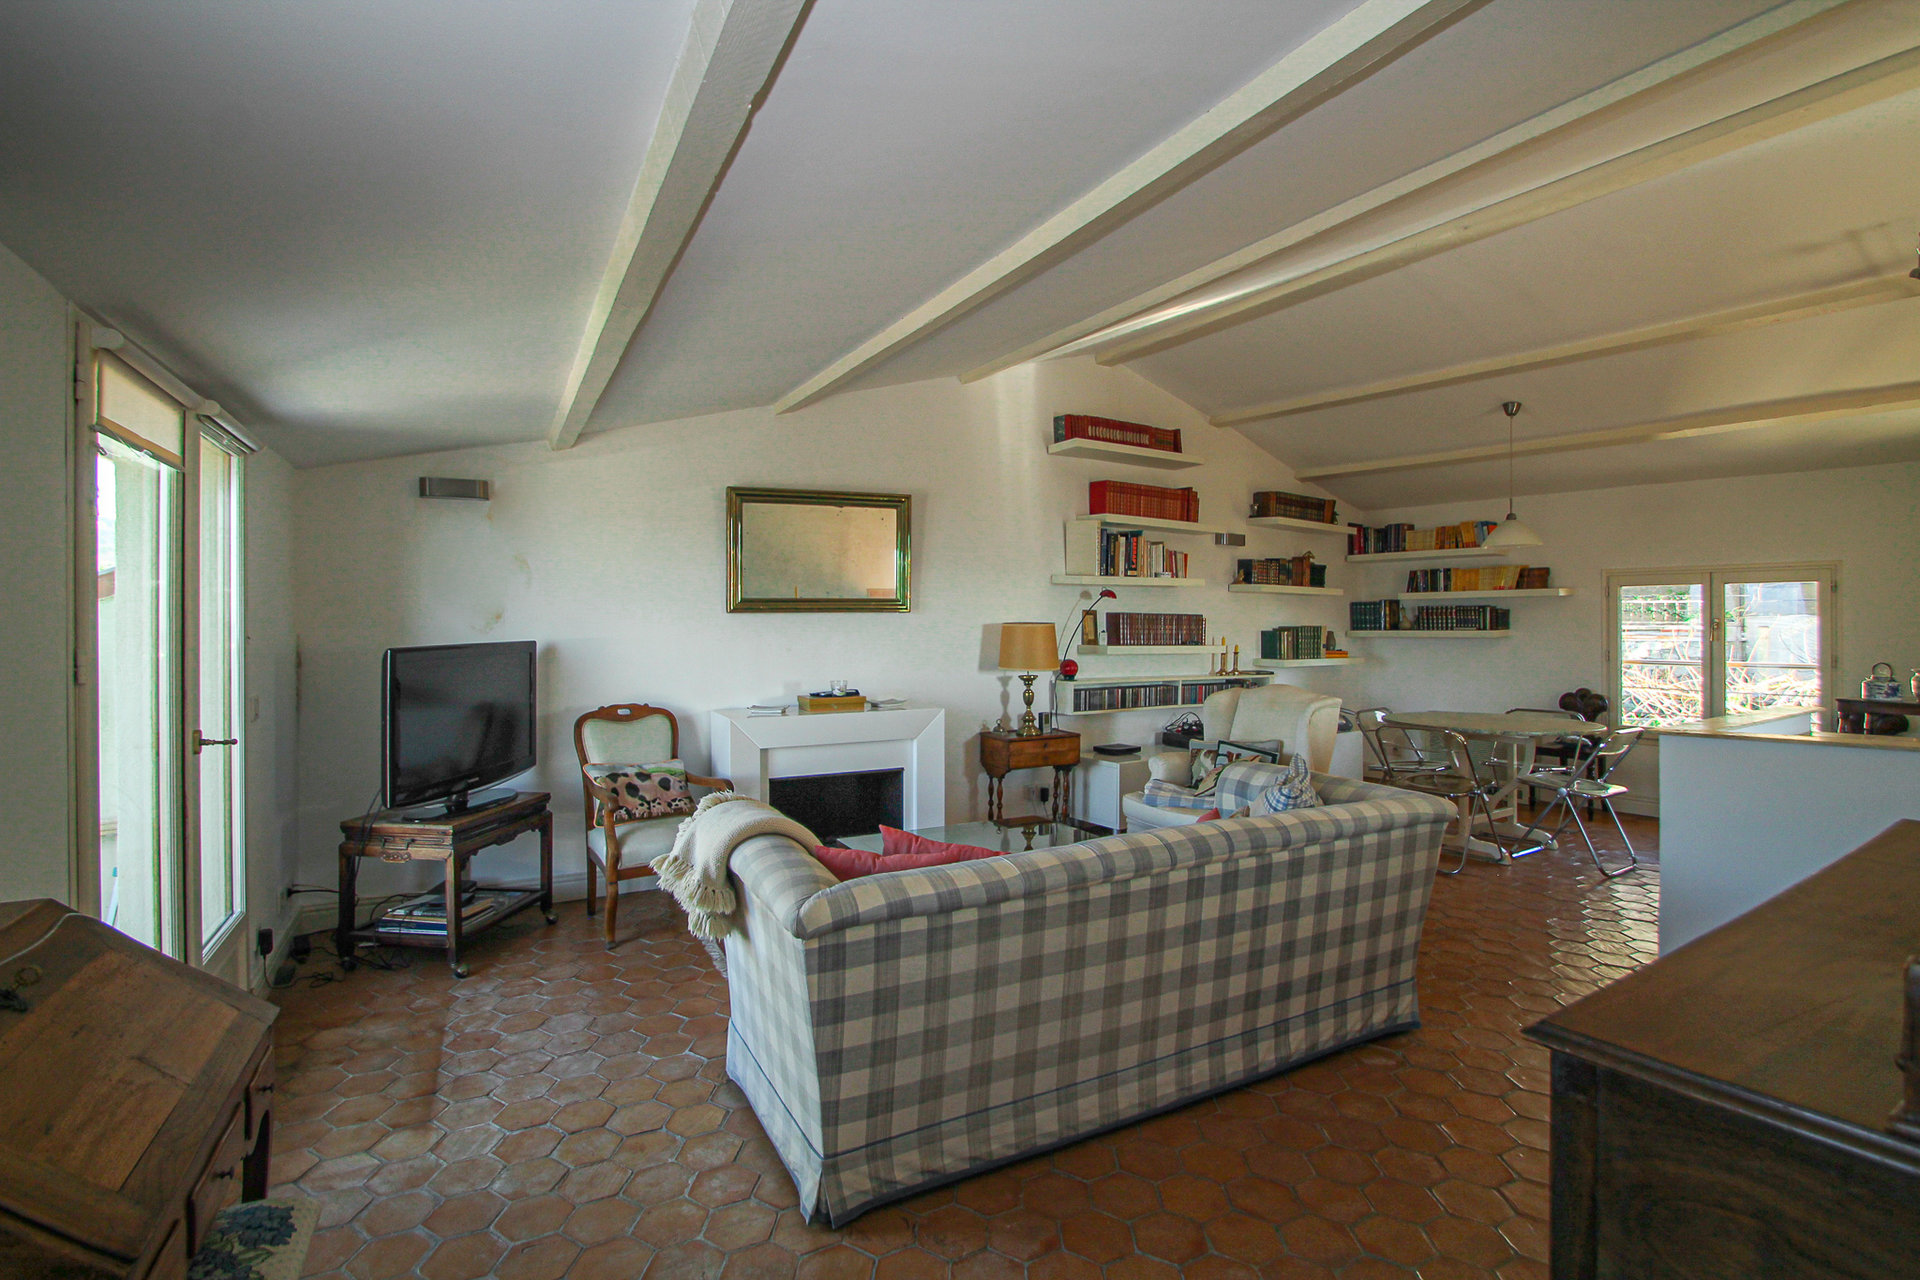 Fayence - Apartment with terrace, stunning views